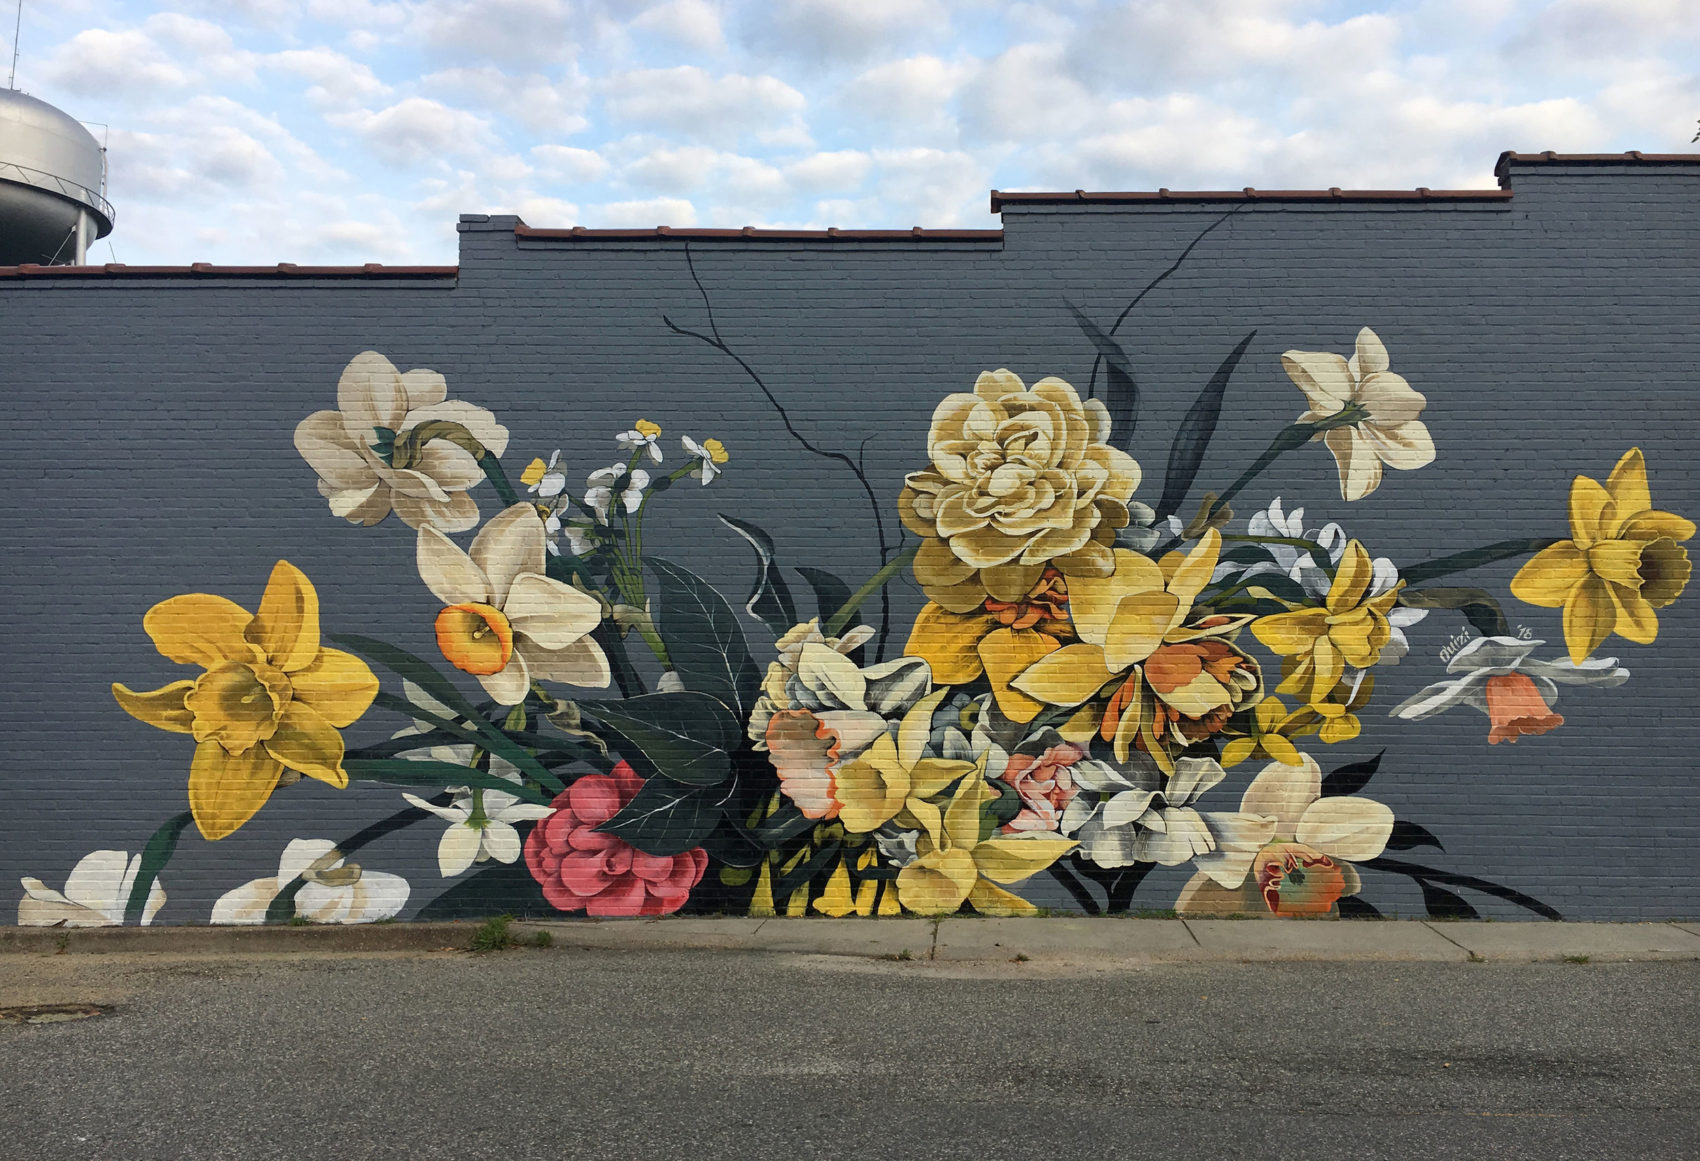 Stunning Huge Murals Floral by Ouizi 7 Stunning Huge Murals Floral by Ouizi